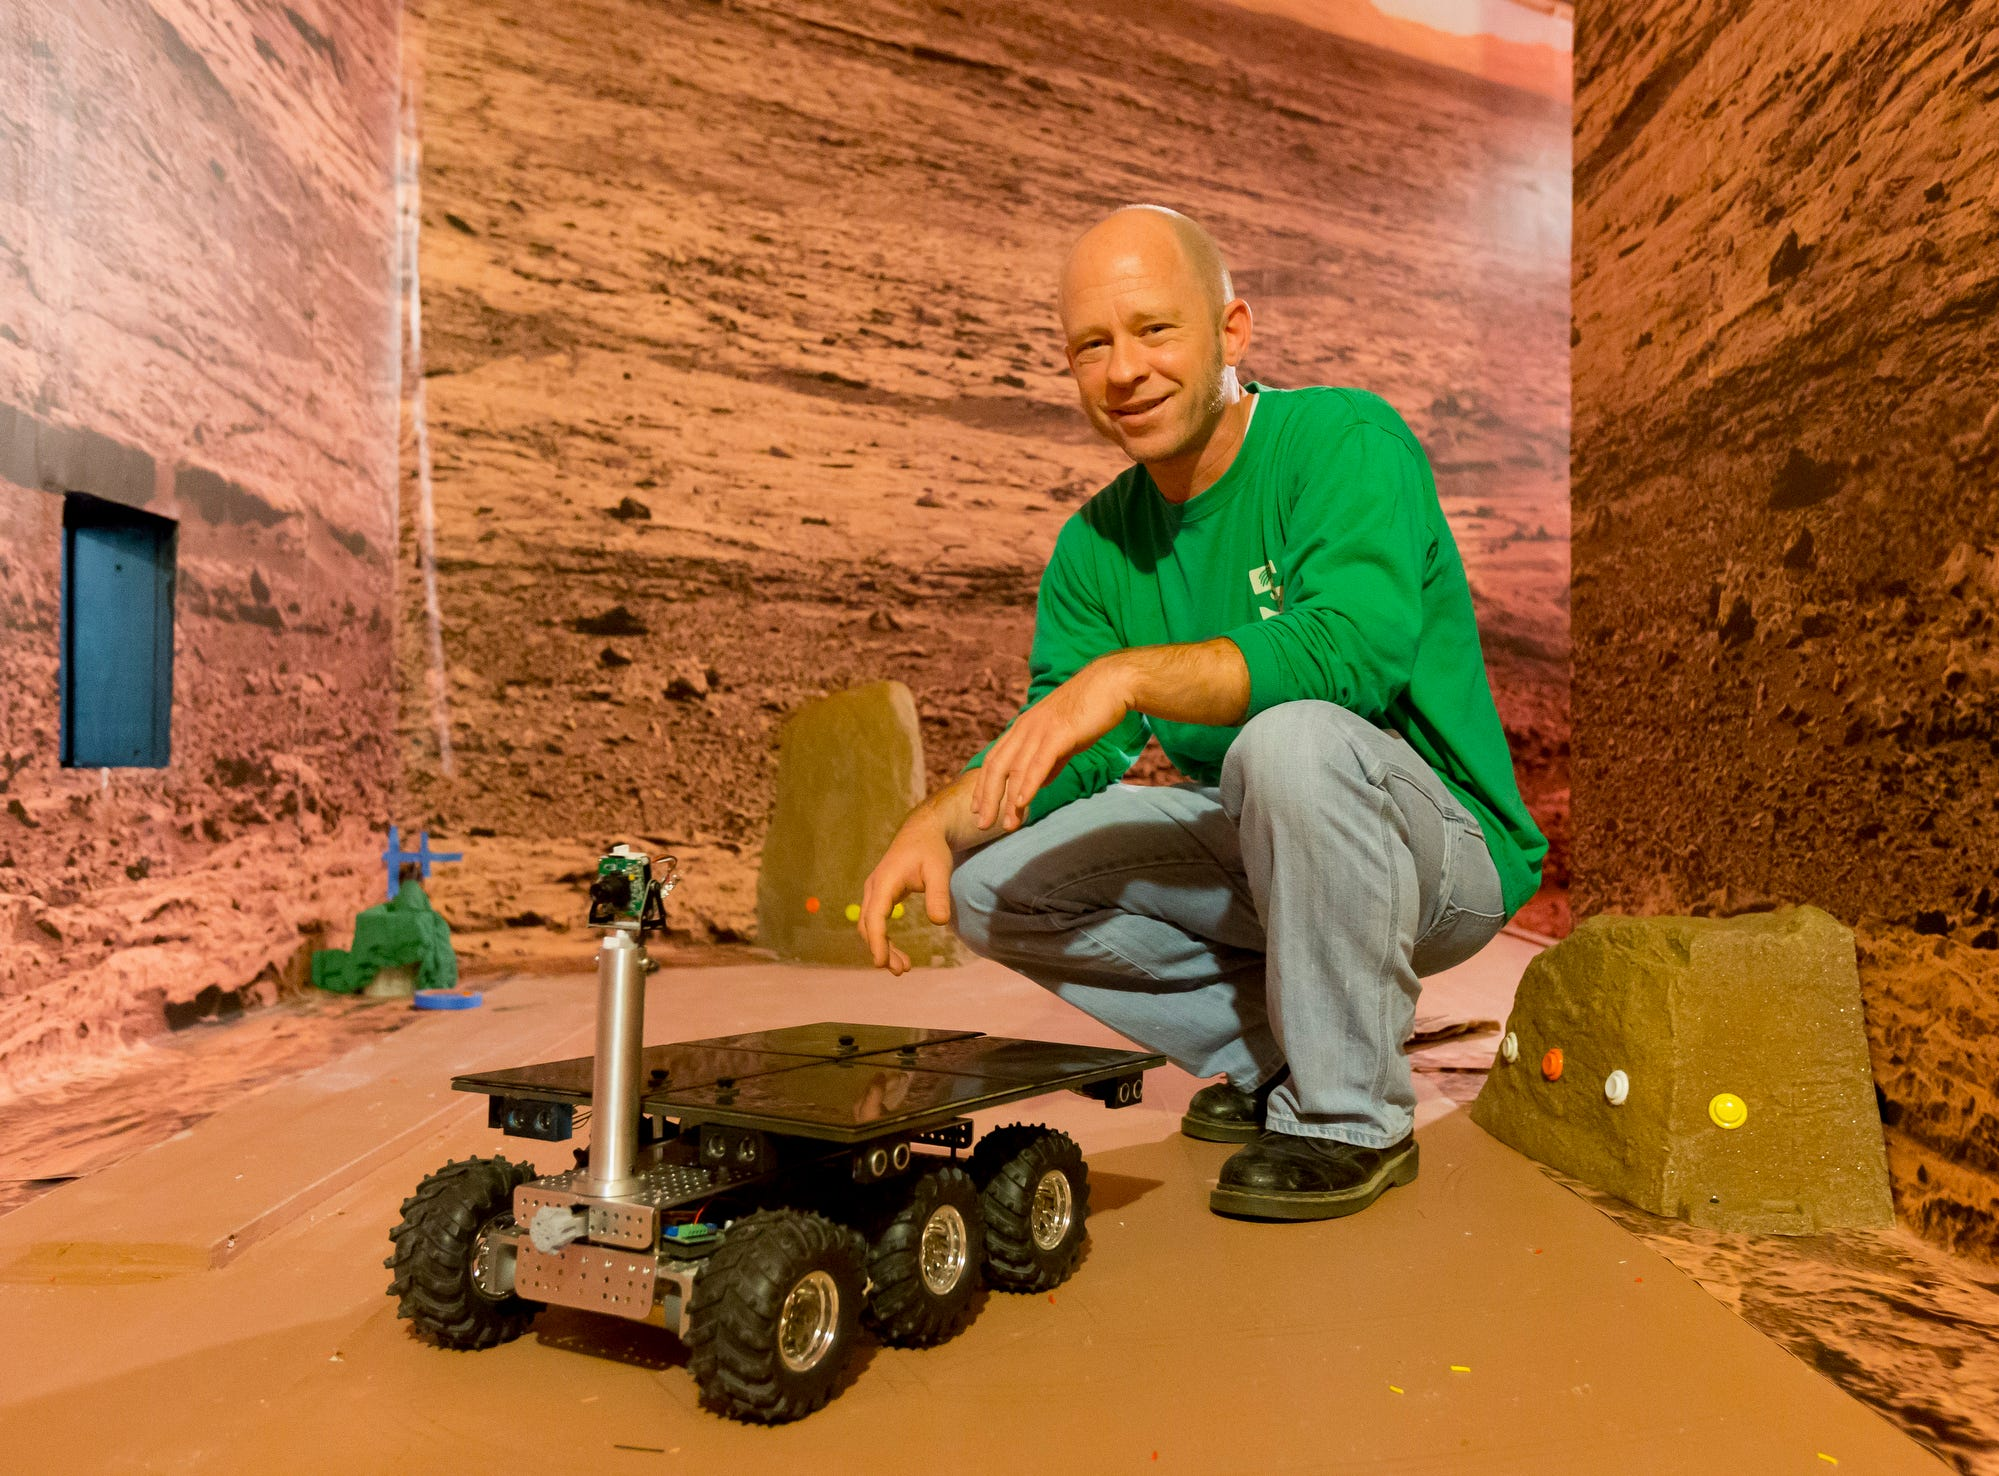 Exhibit Developer David Jordan built a miniature remote control Mars Rover and simulated Martian environment at the Sciencenter in Ithaca in 2014.